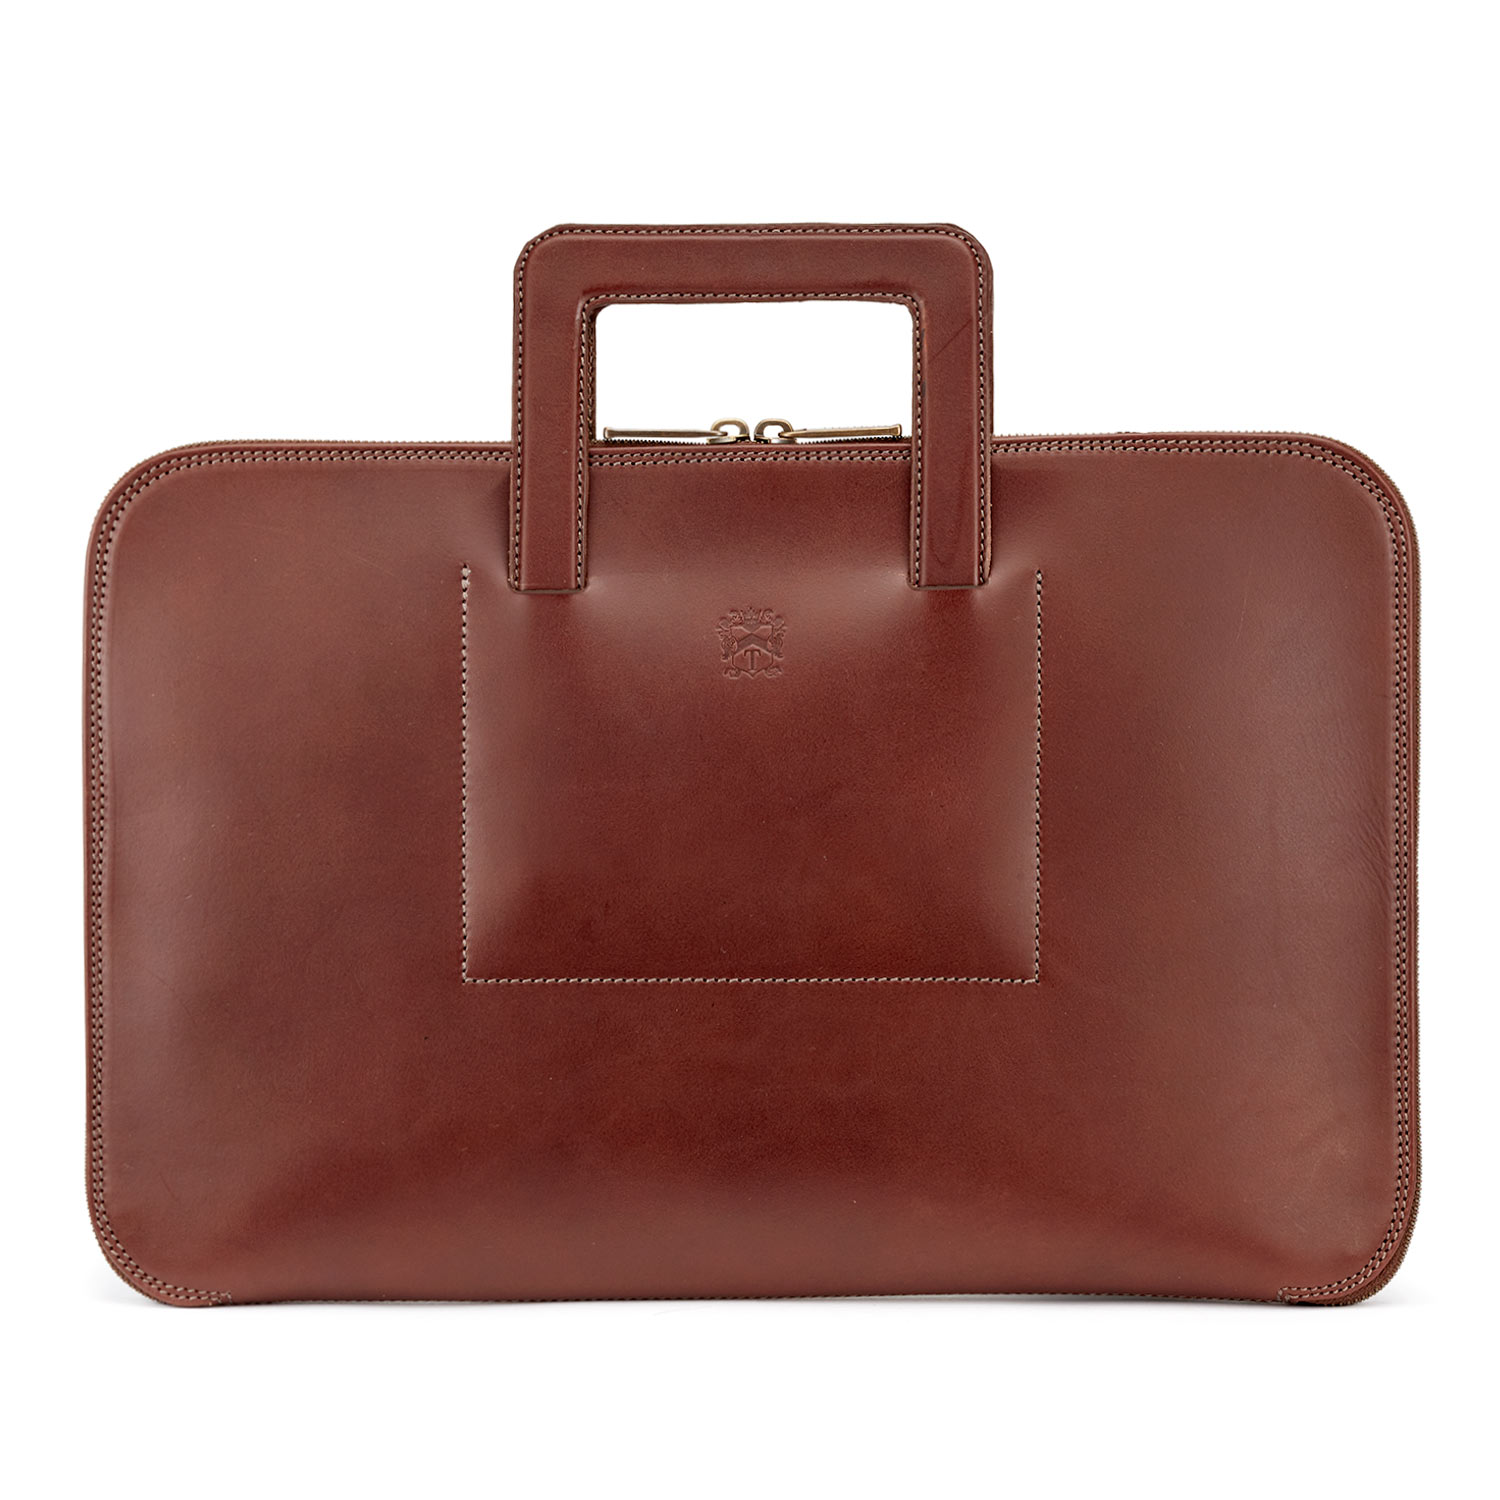 Tusting Westminster Folio Brief in Chestnut Bridle Leather